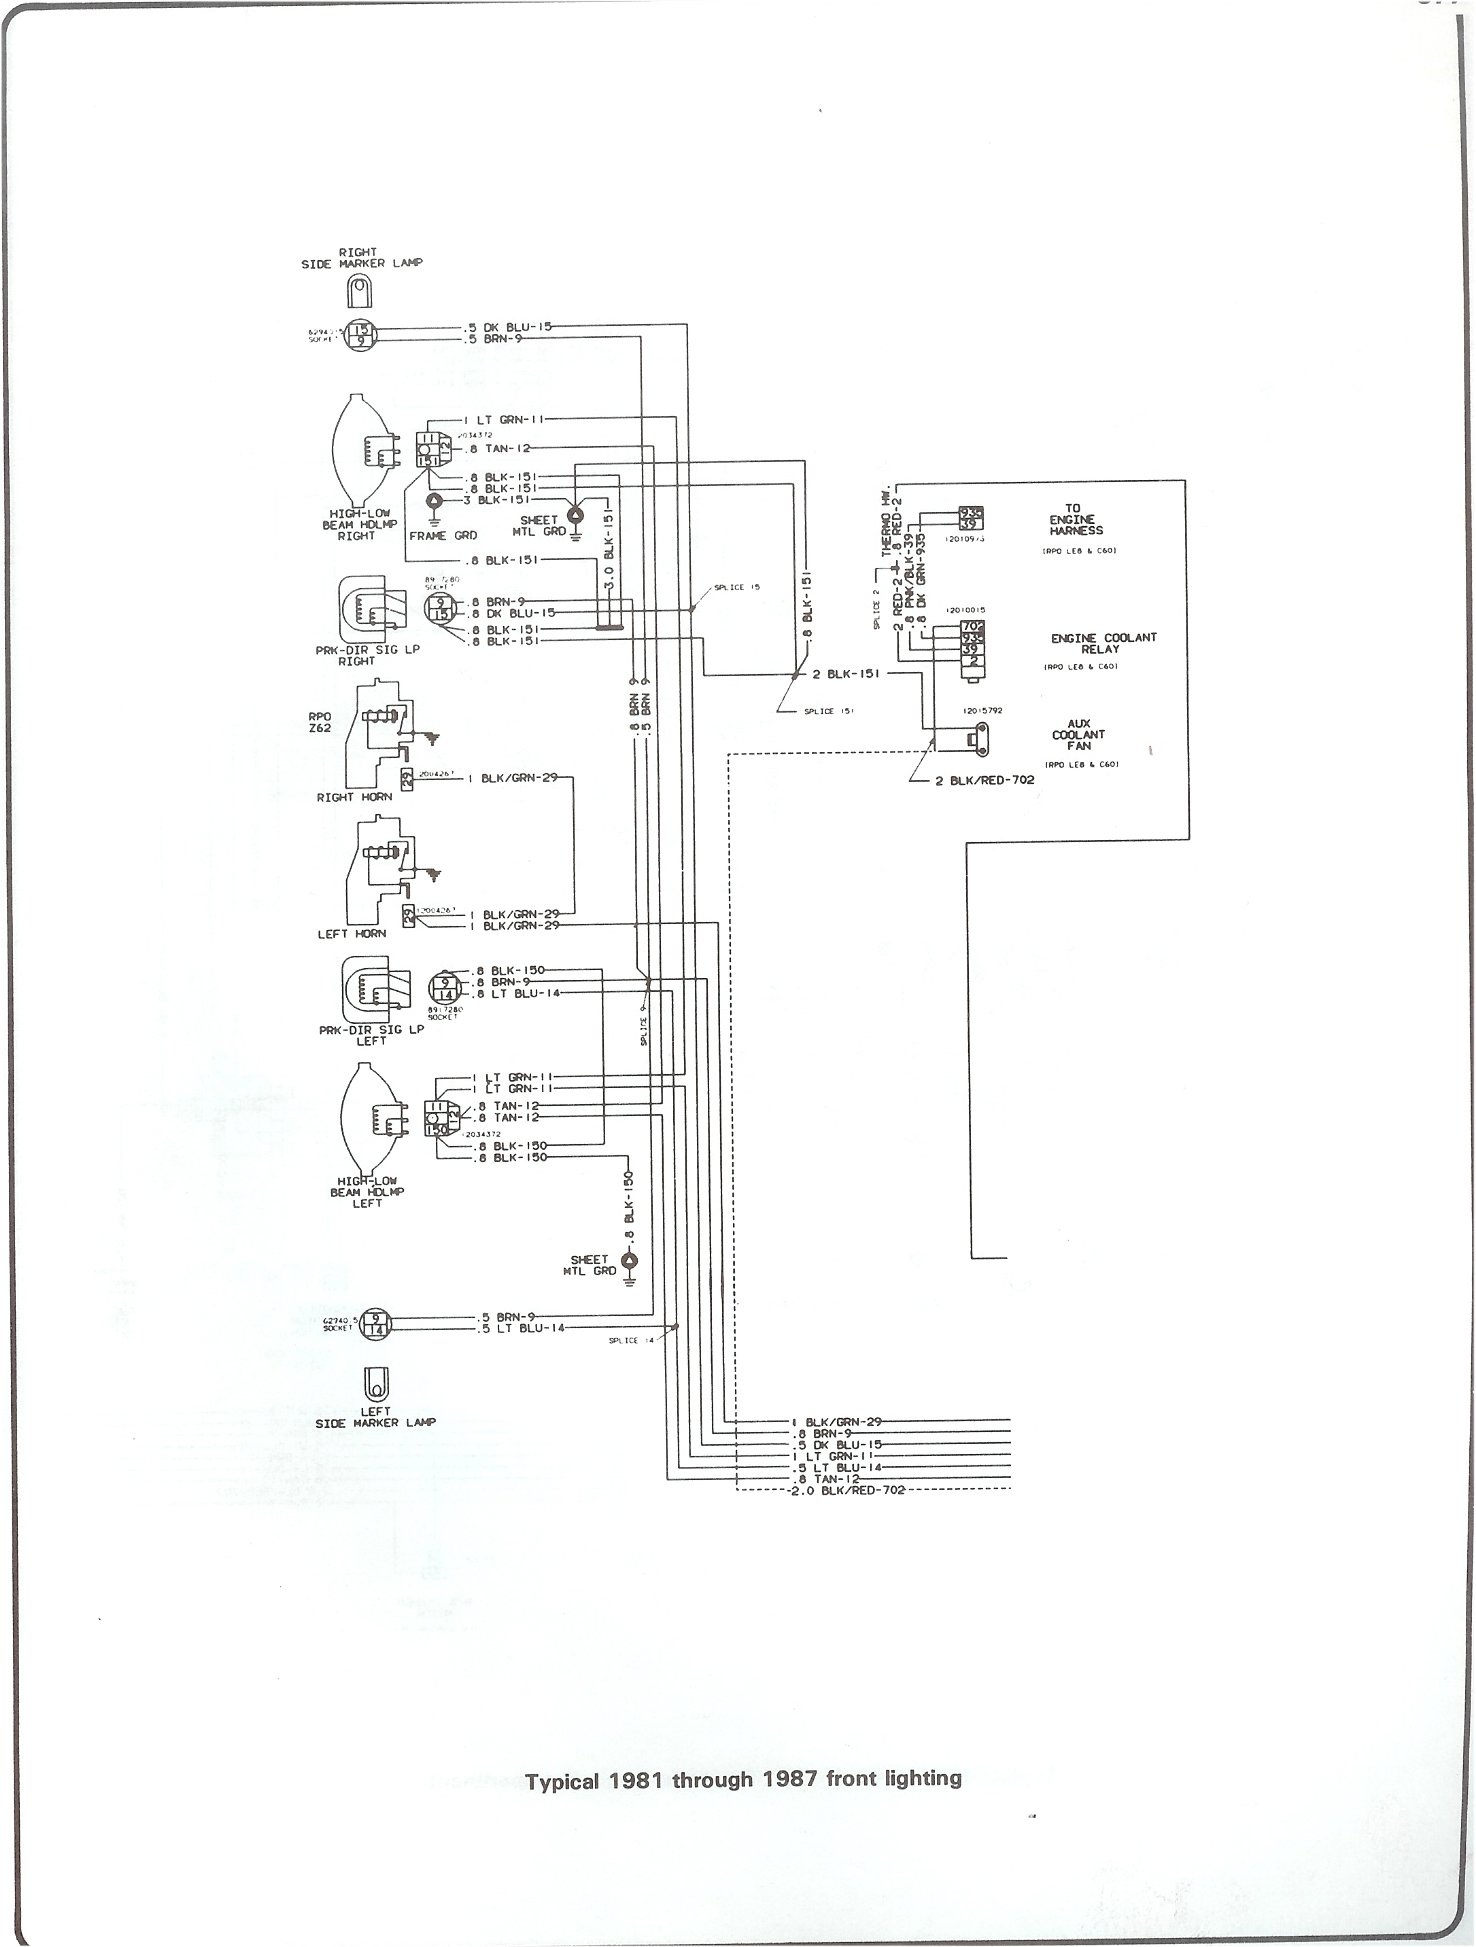 87 chevy truck engine wiring harness diagram 1984 chevy truck engine wire harness complete 73-87 wiring diagrams